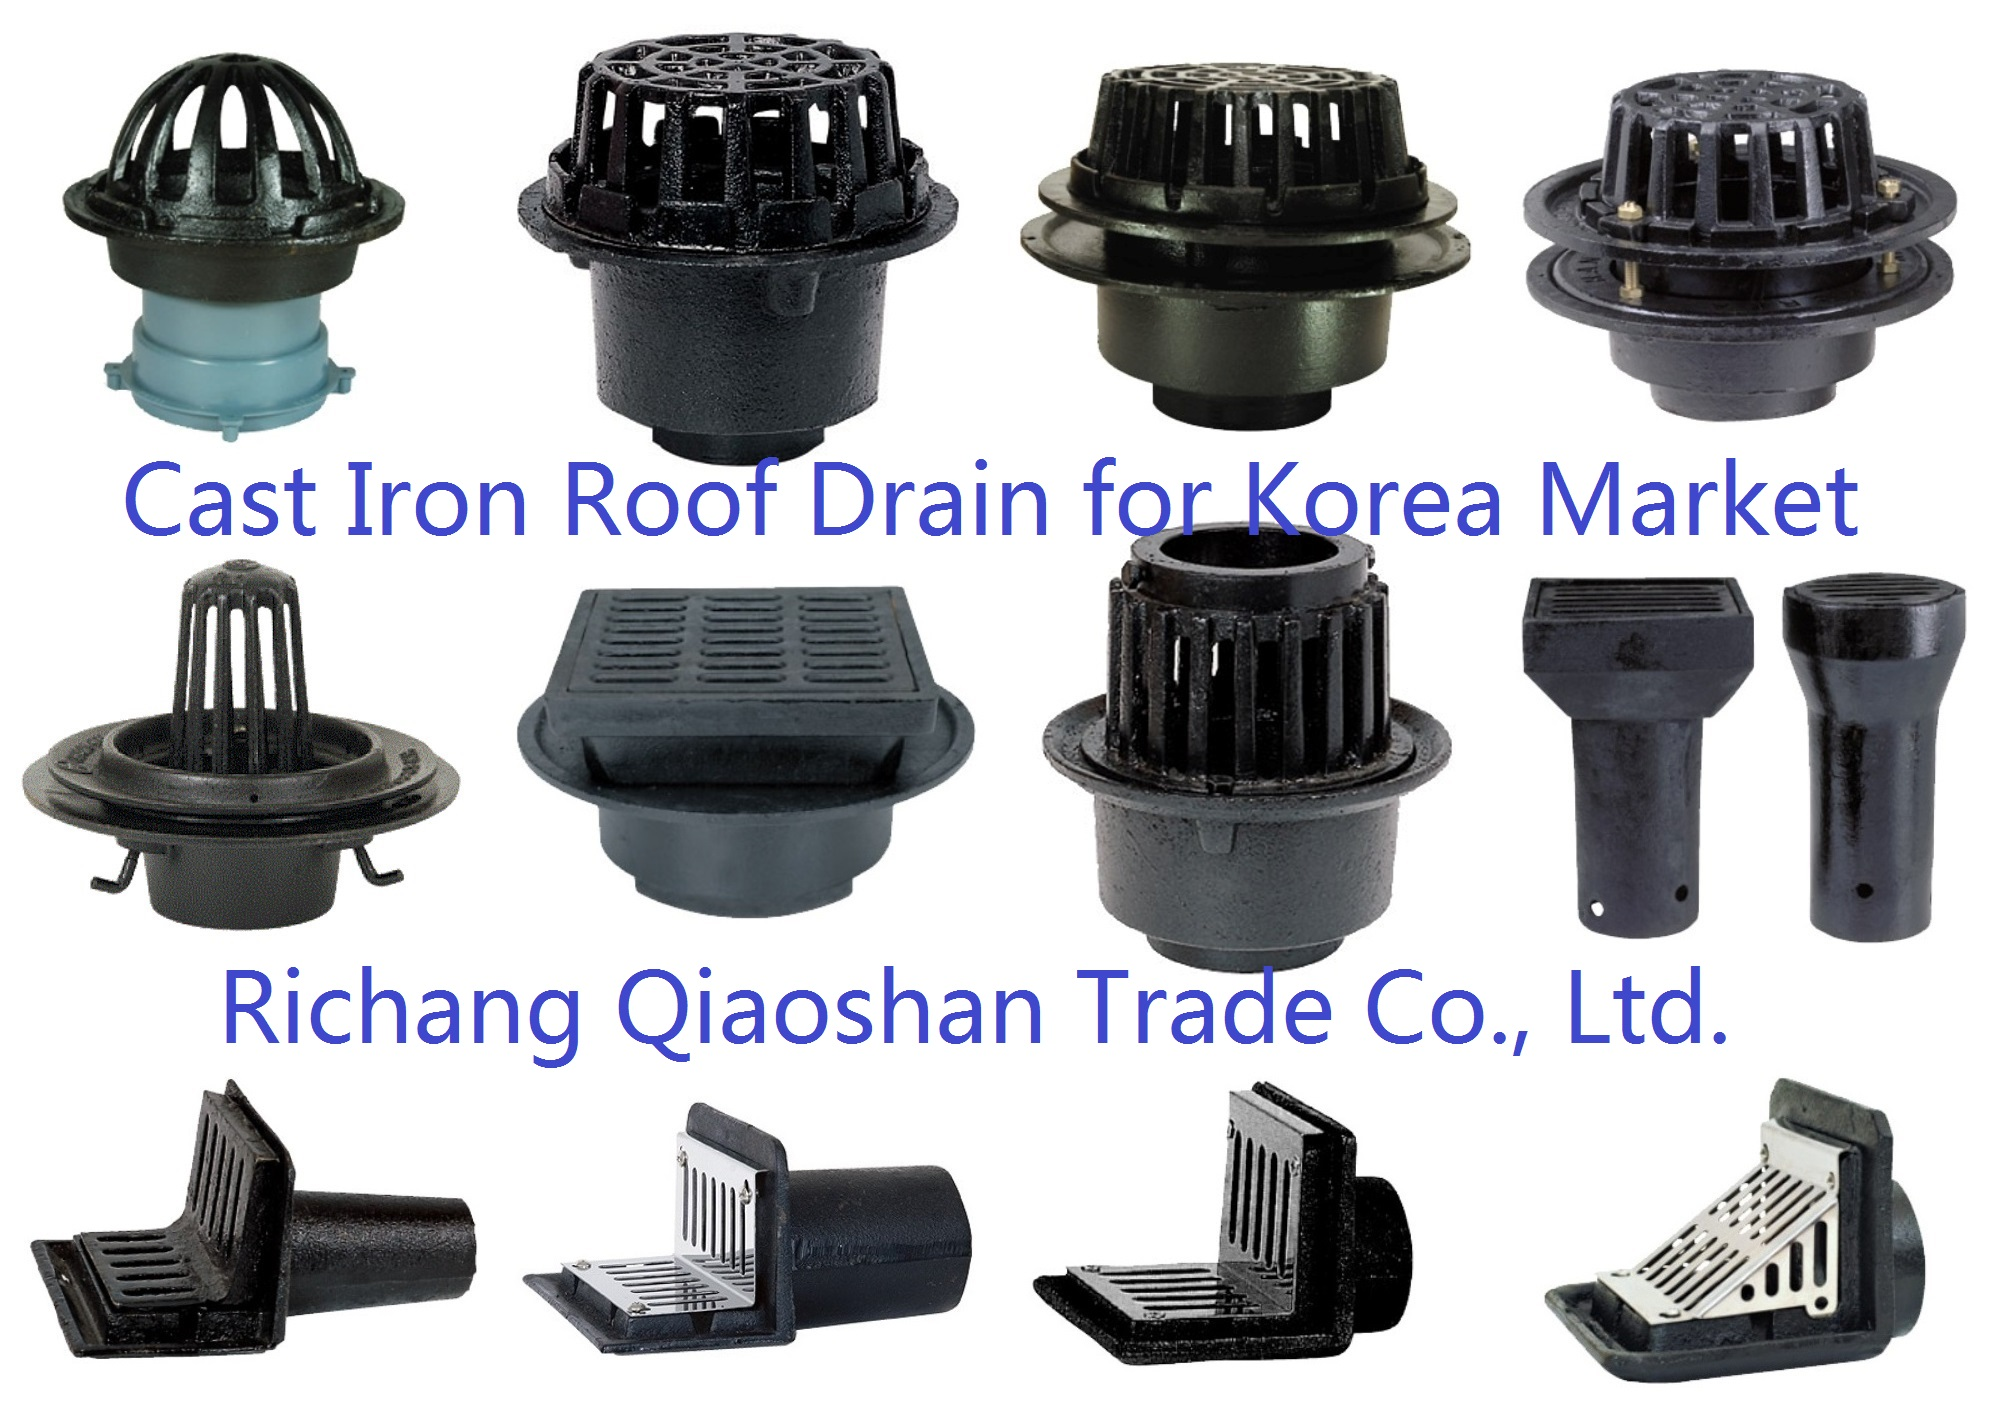 RD-6100 RD6200 6300 6350 6360 6400 6500 6600 6610 5700 Korean Cast Iron Roof Drain for Roof Drainage